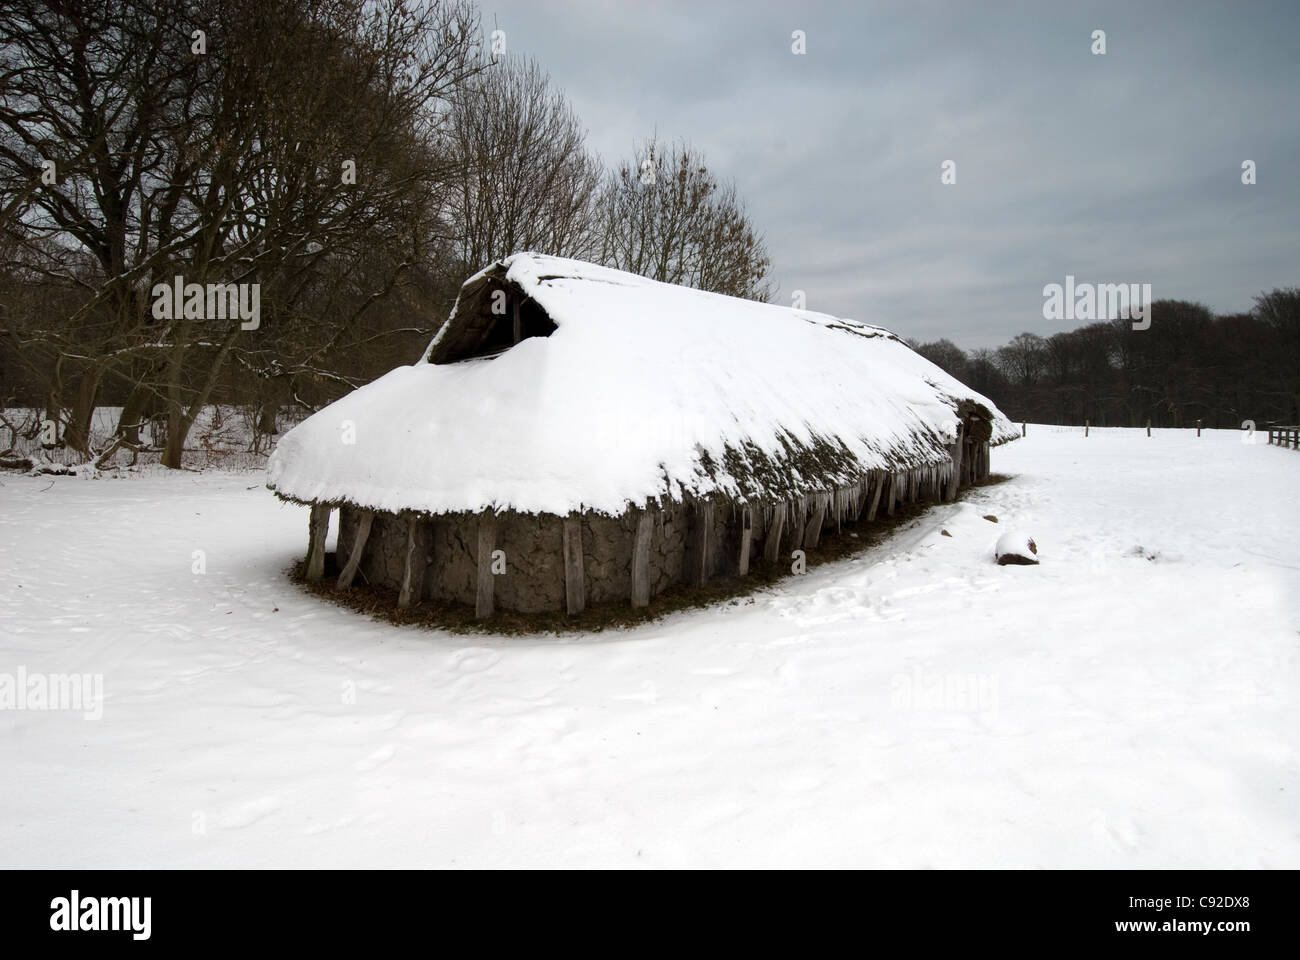 The Moesgard Museum features some reconstructions of historic Danish buildings, such as this Iron Age house. - Stock Image